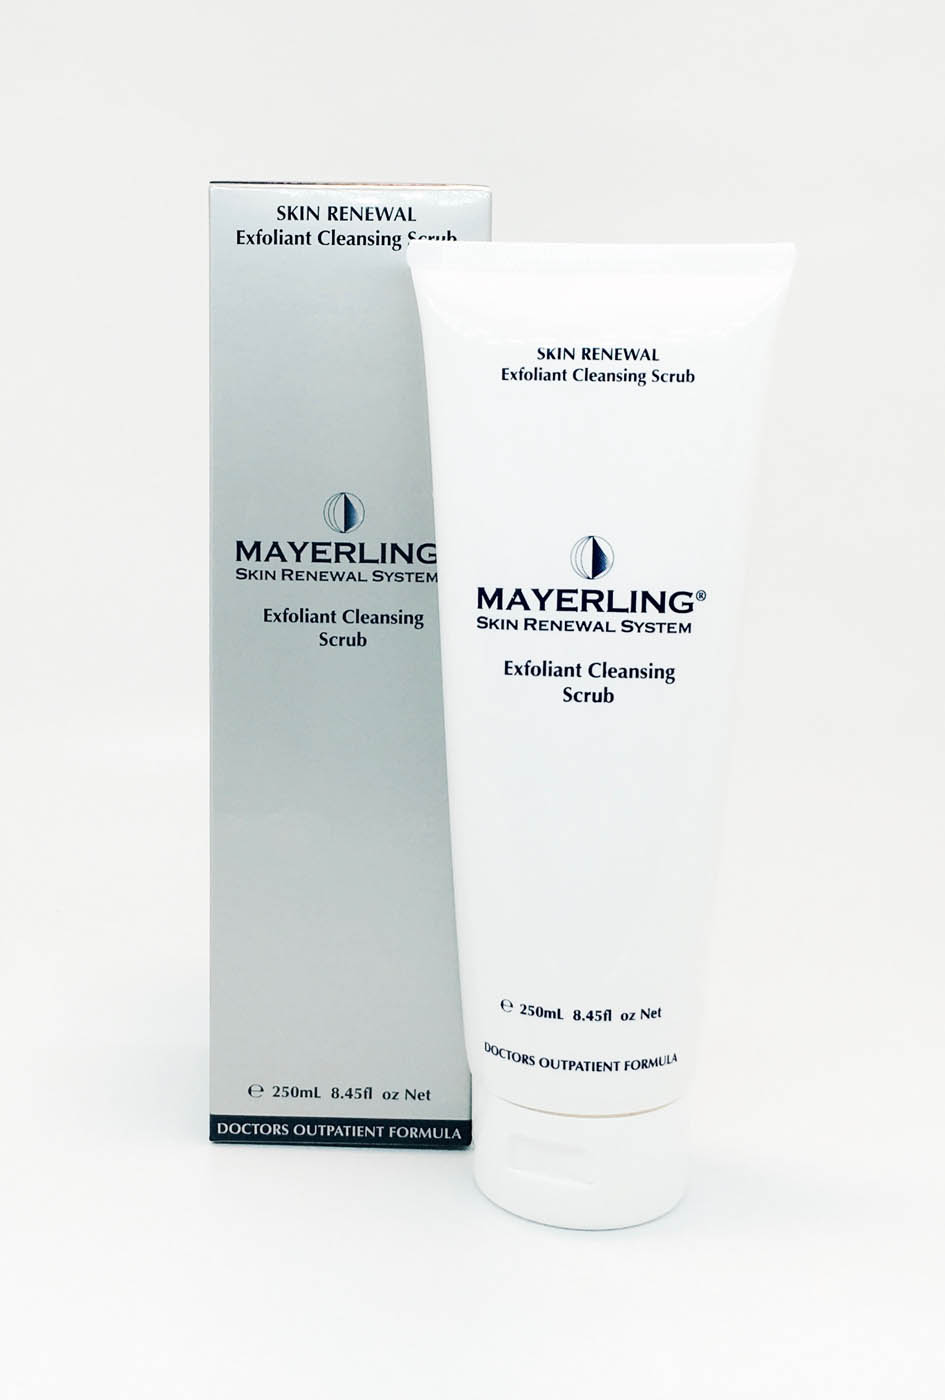 Exfoliant Cleansing Scrub 250ml product image by Mayerling Skin Renewal System